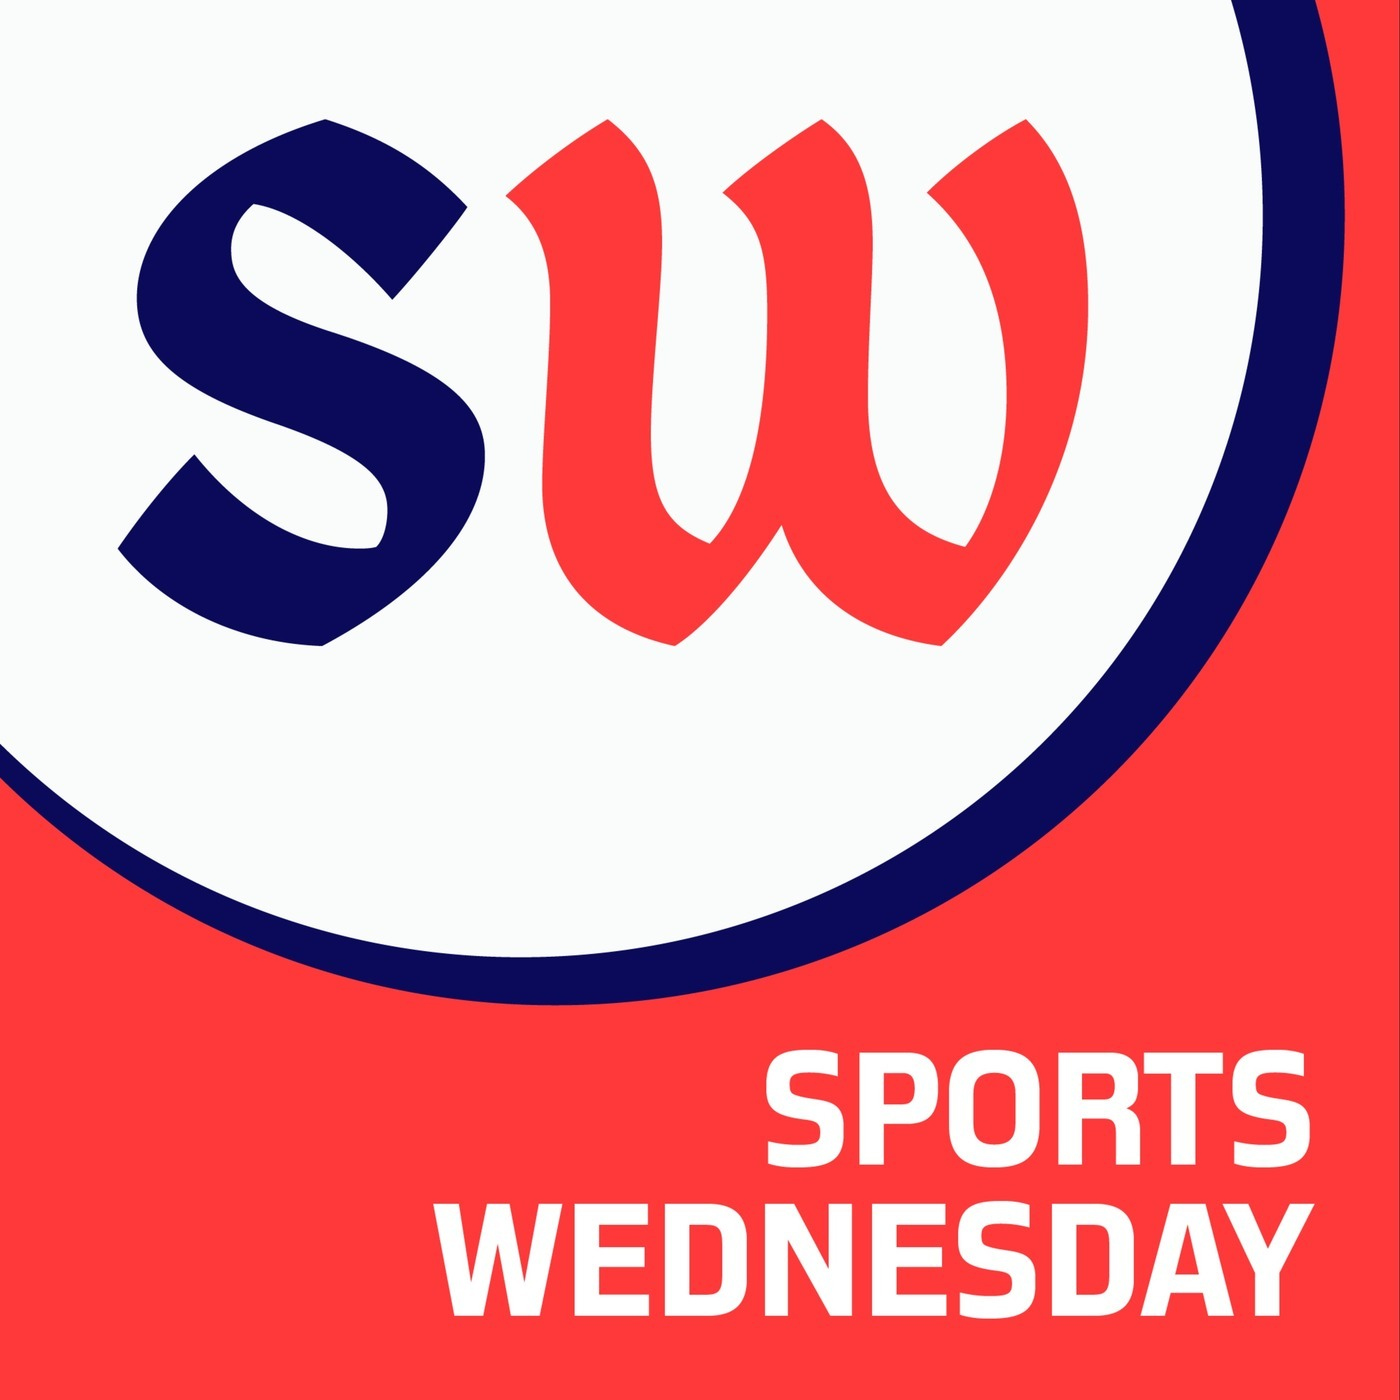 Sports Wednesday: 01.16.19: Best Movie Quarterbacks, NFC/AFC Championship Breakdowns, Remembering Second Place teams, and when you should and shouldn't celebrate a big play